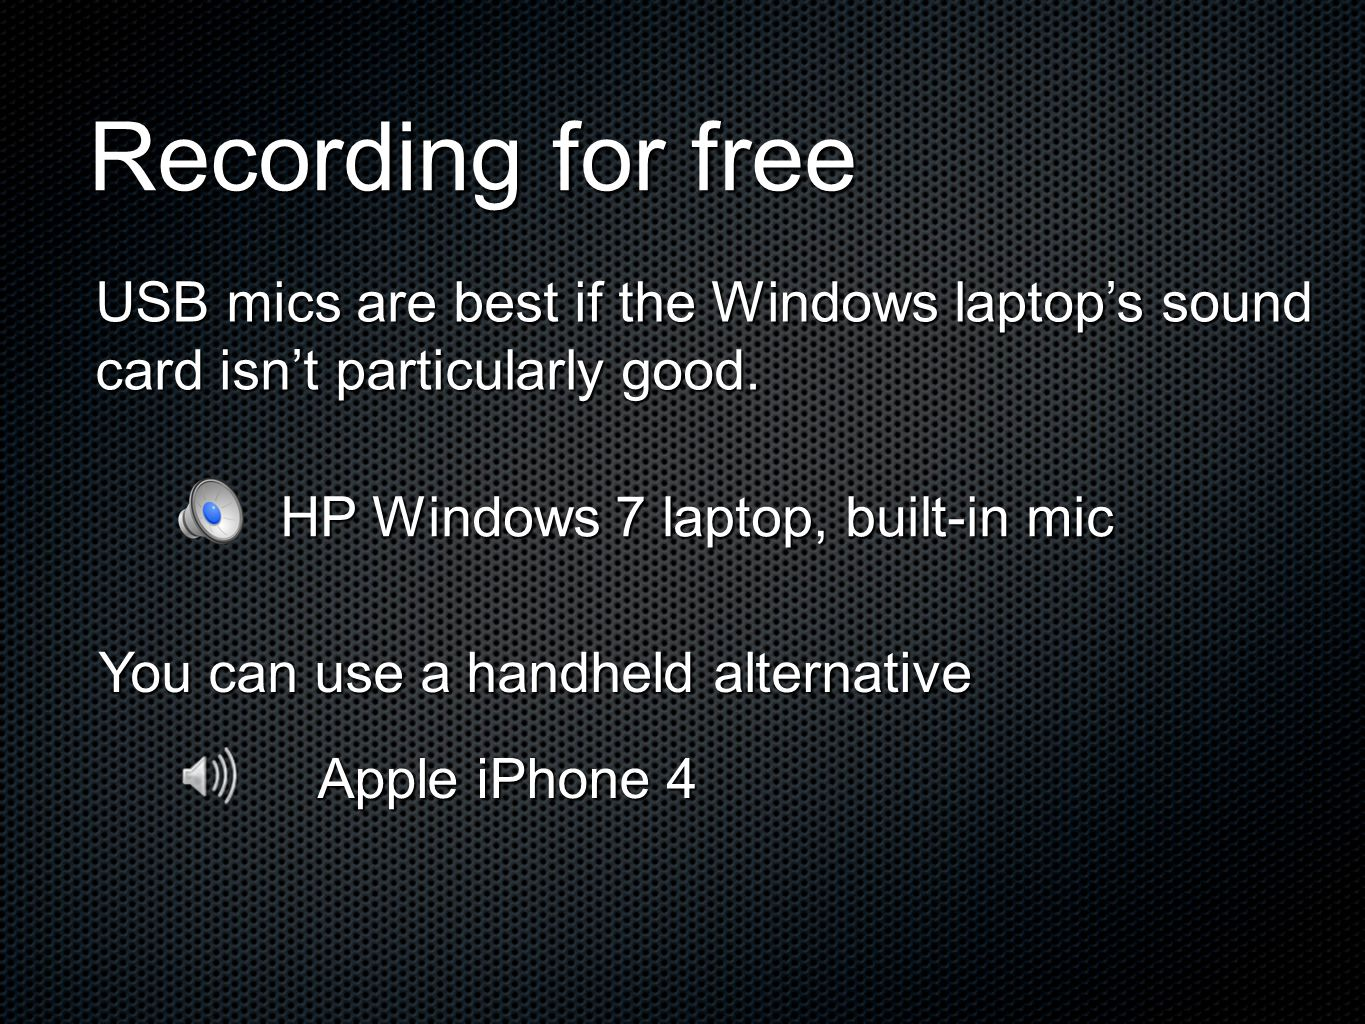 Recording for free HP Windows 7 laptop, built-in mic Apple iPhone 4 USB mics are best if the Windows laptops sound card isnt particularly good. You ca